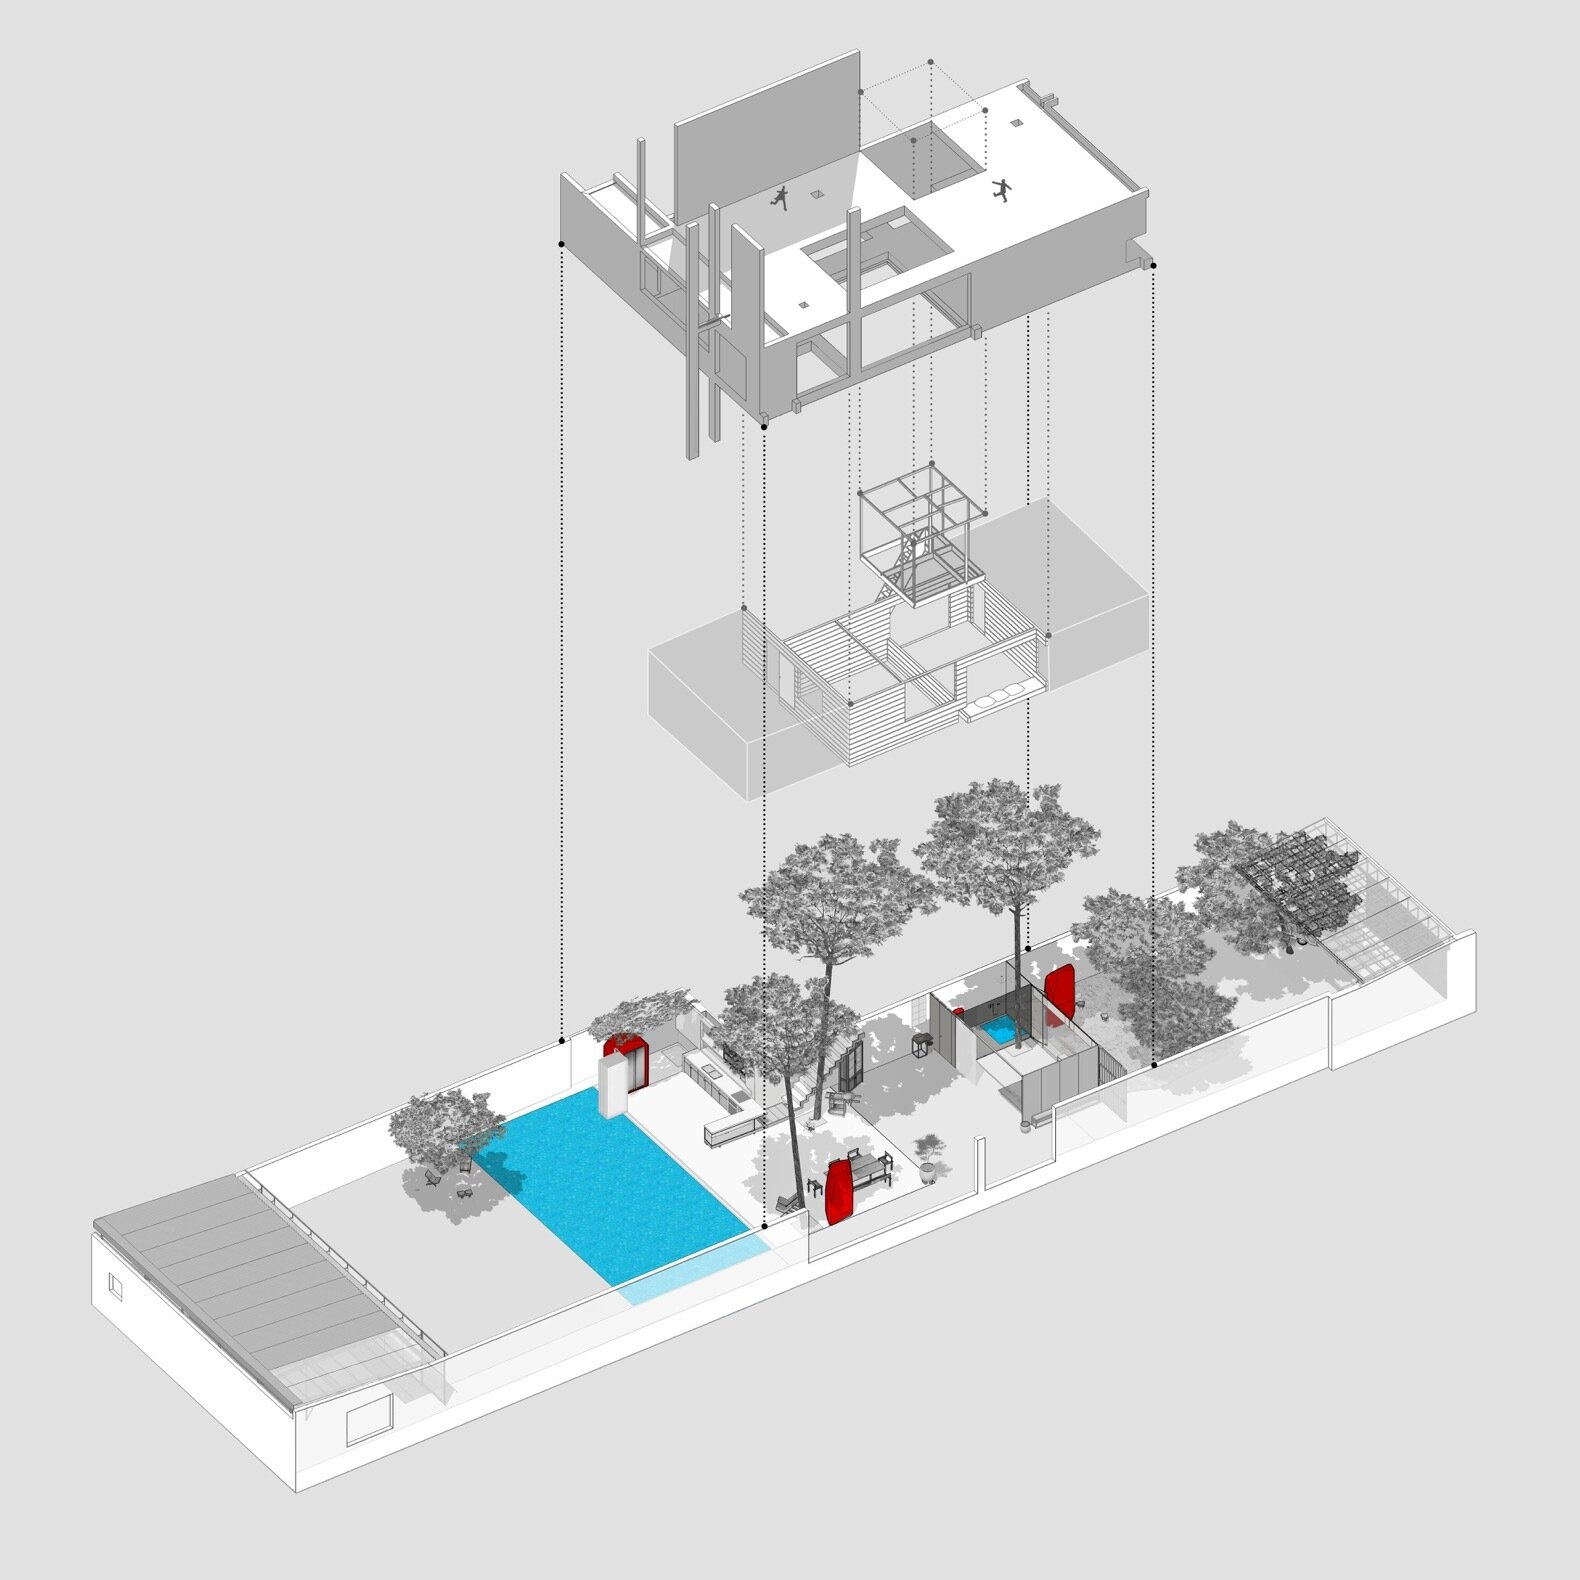 Da House axonometric drawing